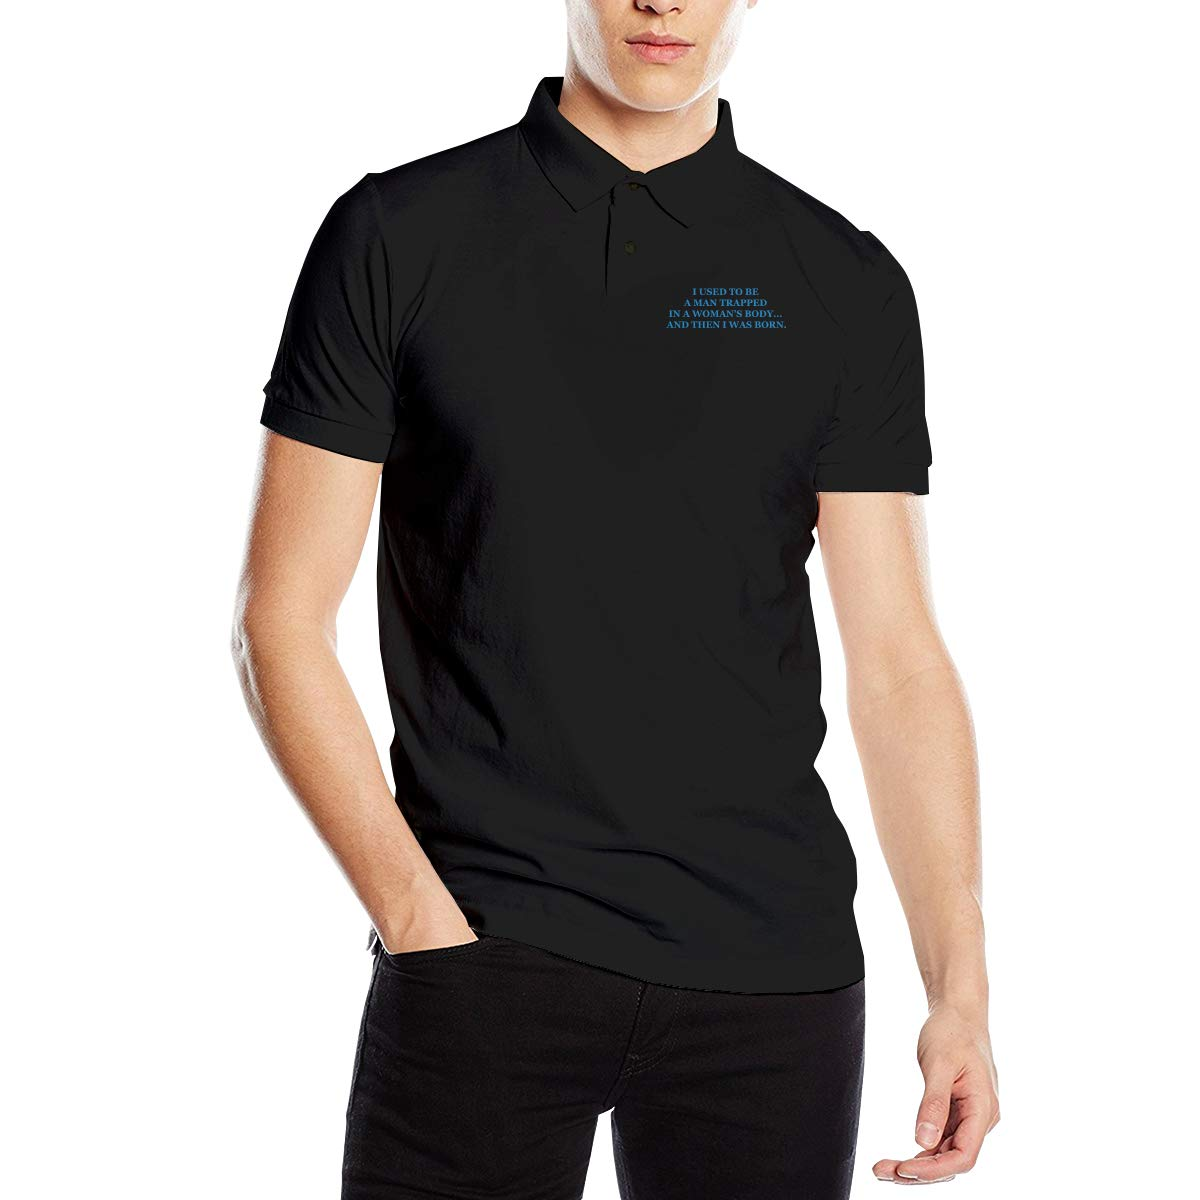 Cjlrqone I Used to Be A Man Trapped in A Womans Body and Then I was Born Mens Funny Polo Shirts XXL Black